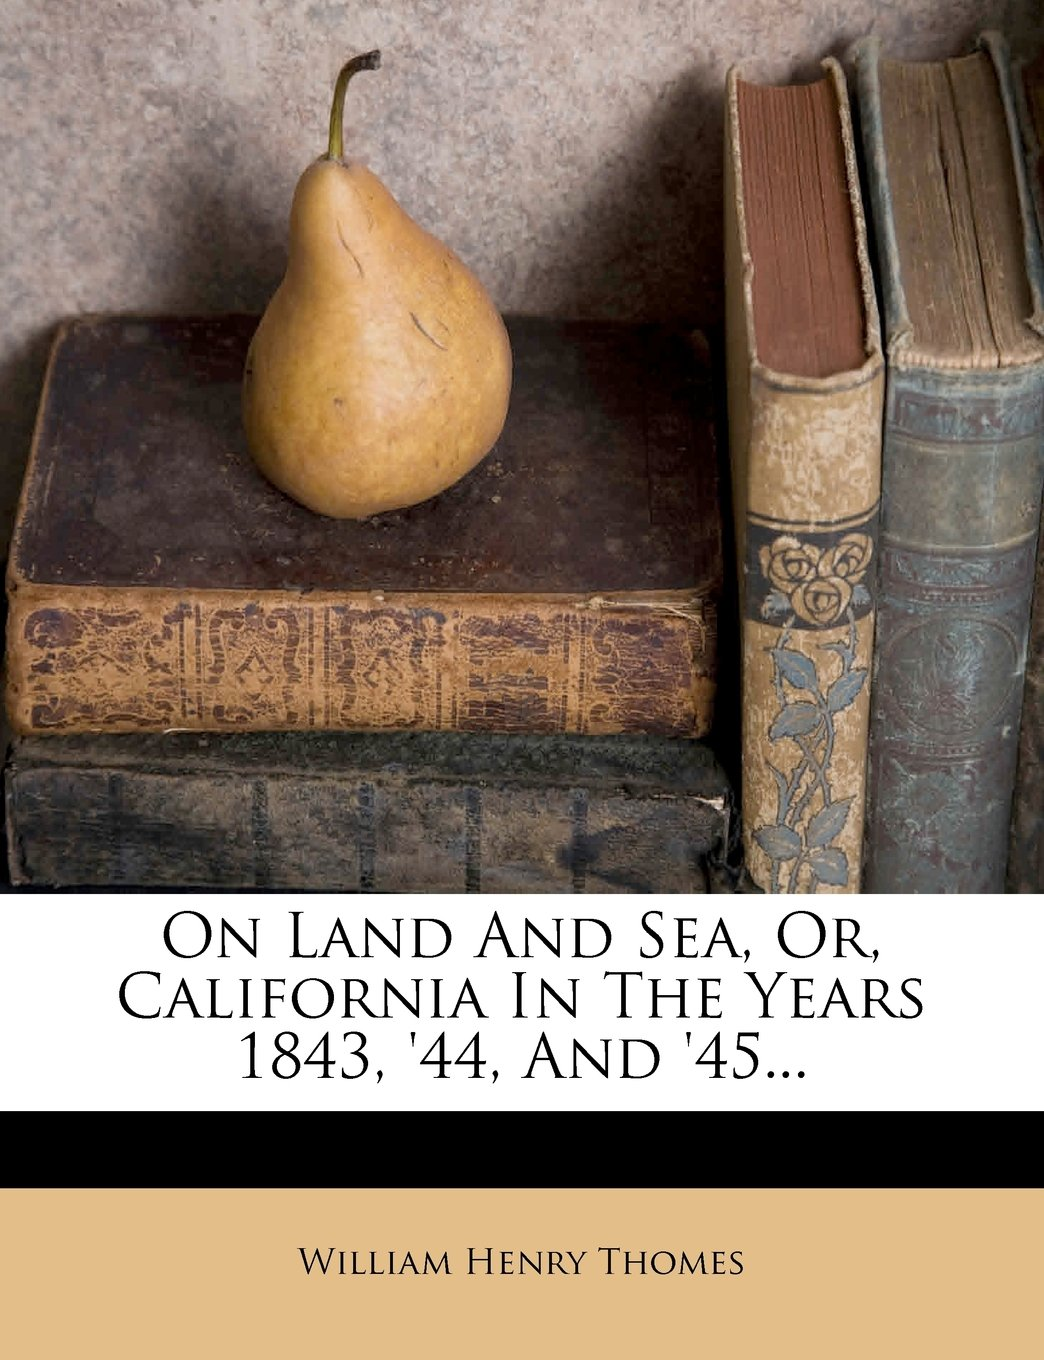 Download On Land and Sea, Or, California in the Years 1843, '44, and '45... PDF